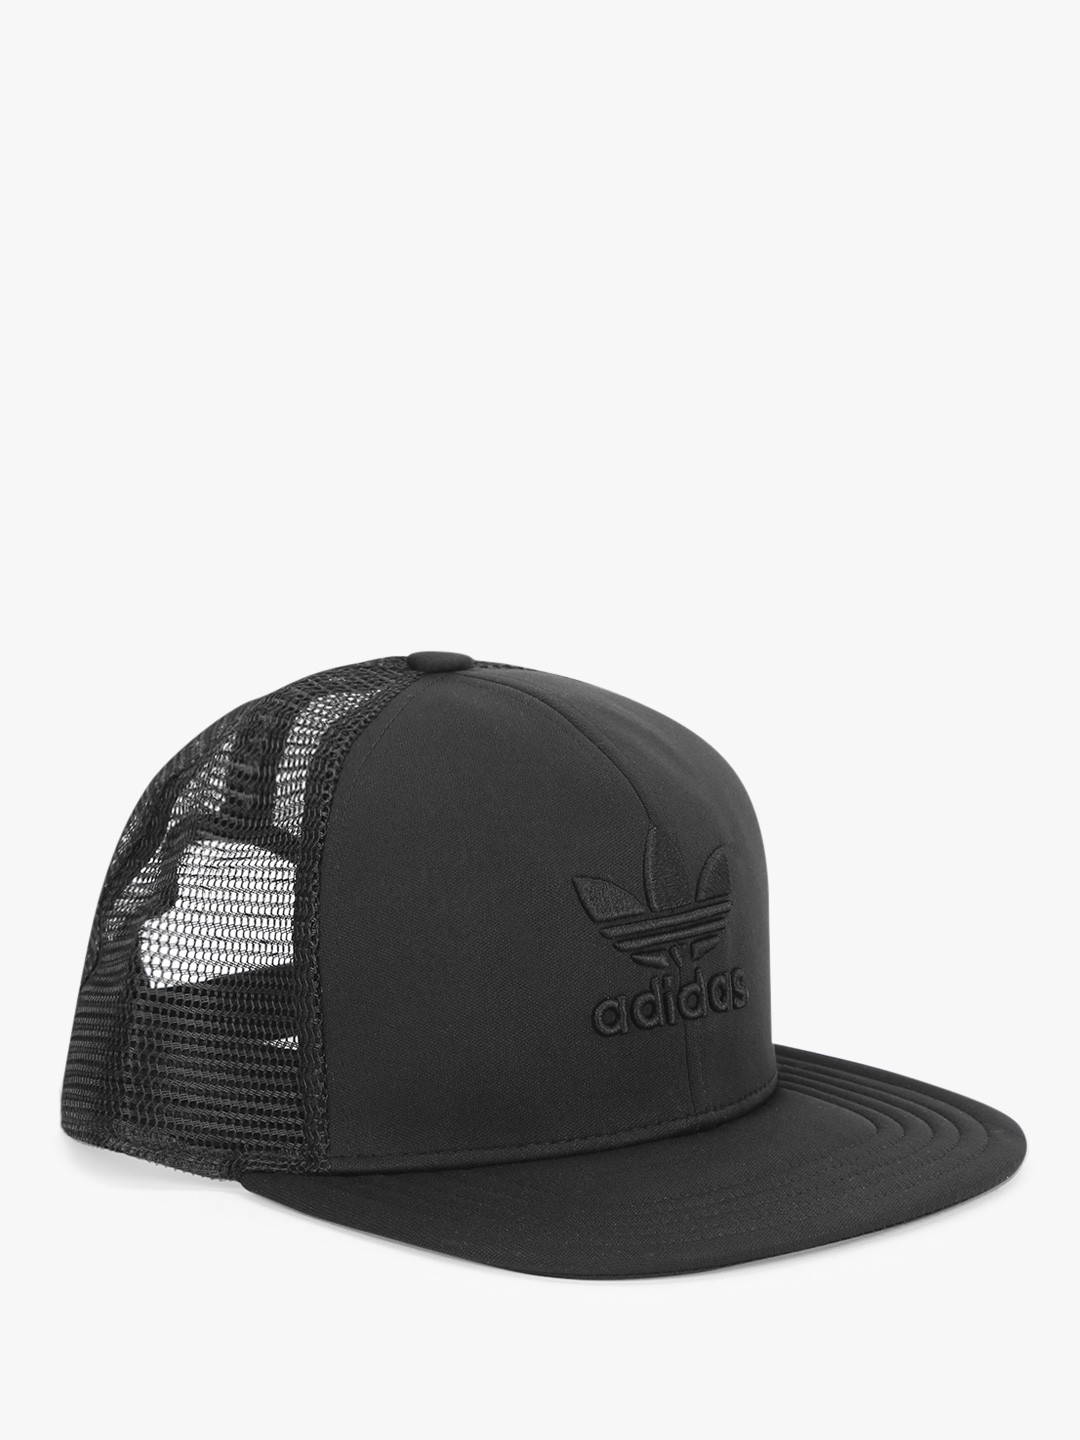 buying new outlet store new products Buy Adidas Originals Black Trefoil Heritage Trucker Cap for ...